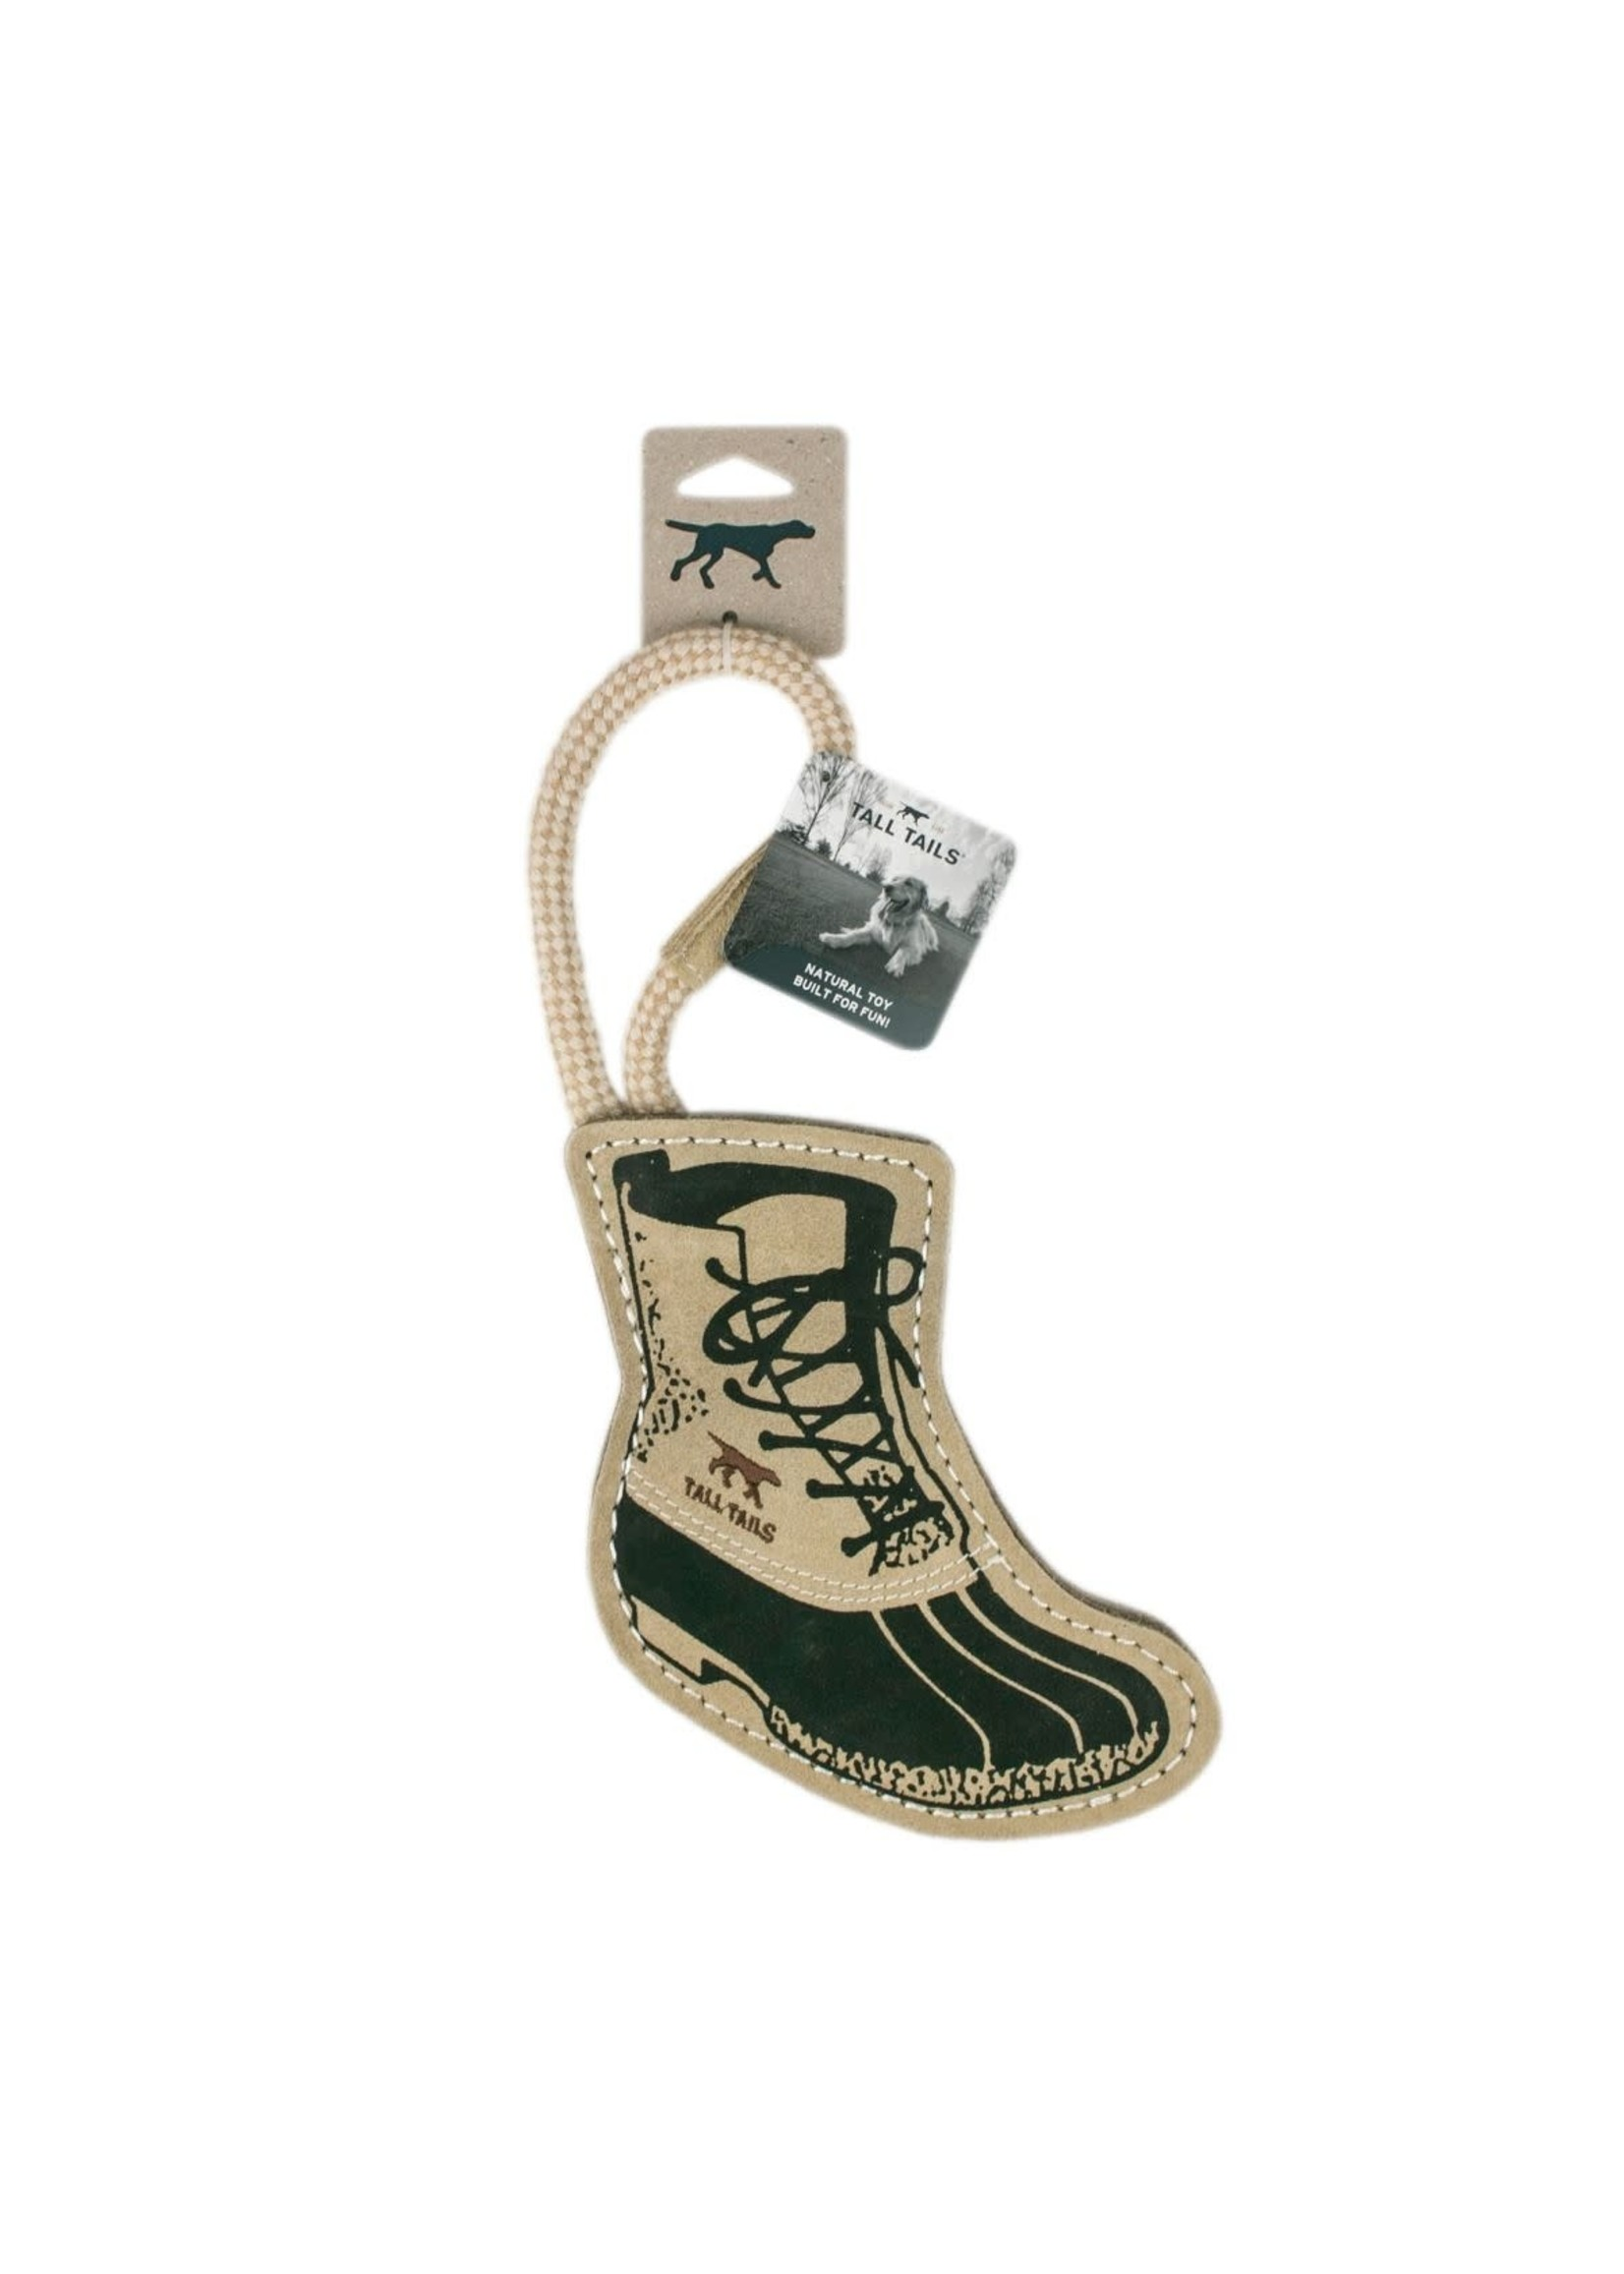 Tall Tails Tall Tails Leather Wool Hiking Boot